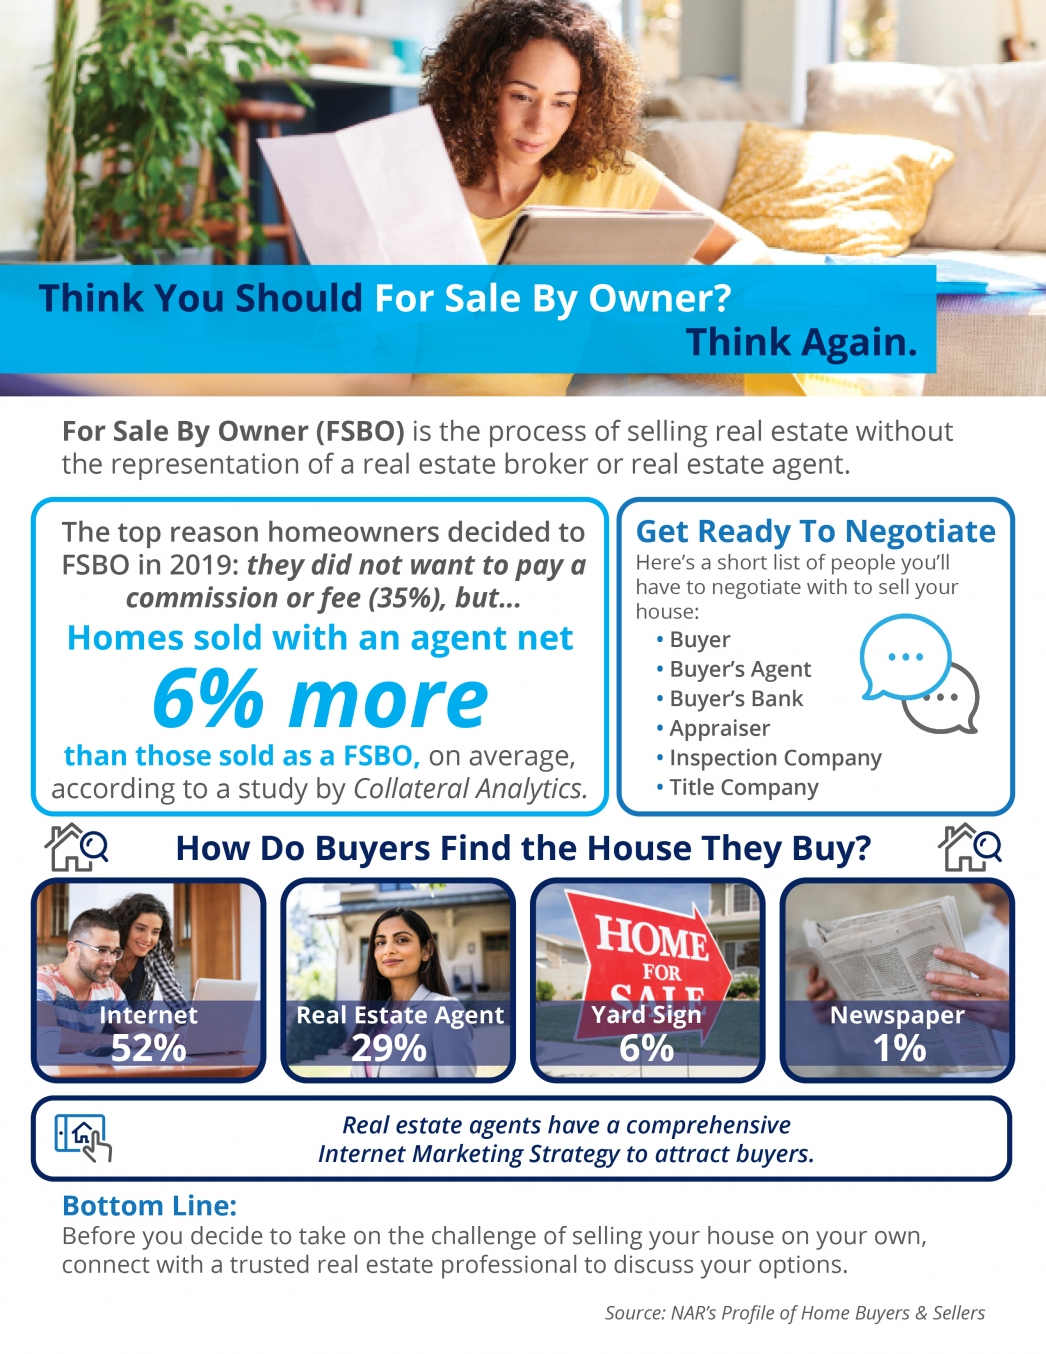 Think You Should For Sale By Owner? Think Again [INFOGRAPHIC] | MyKCM